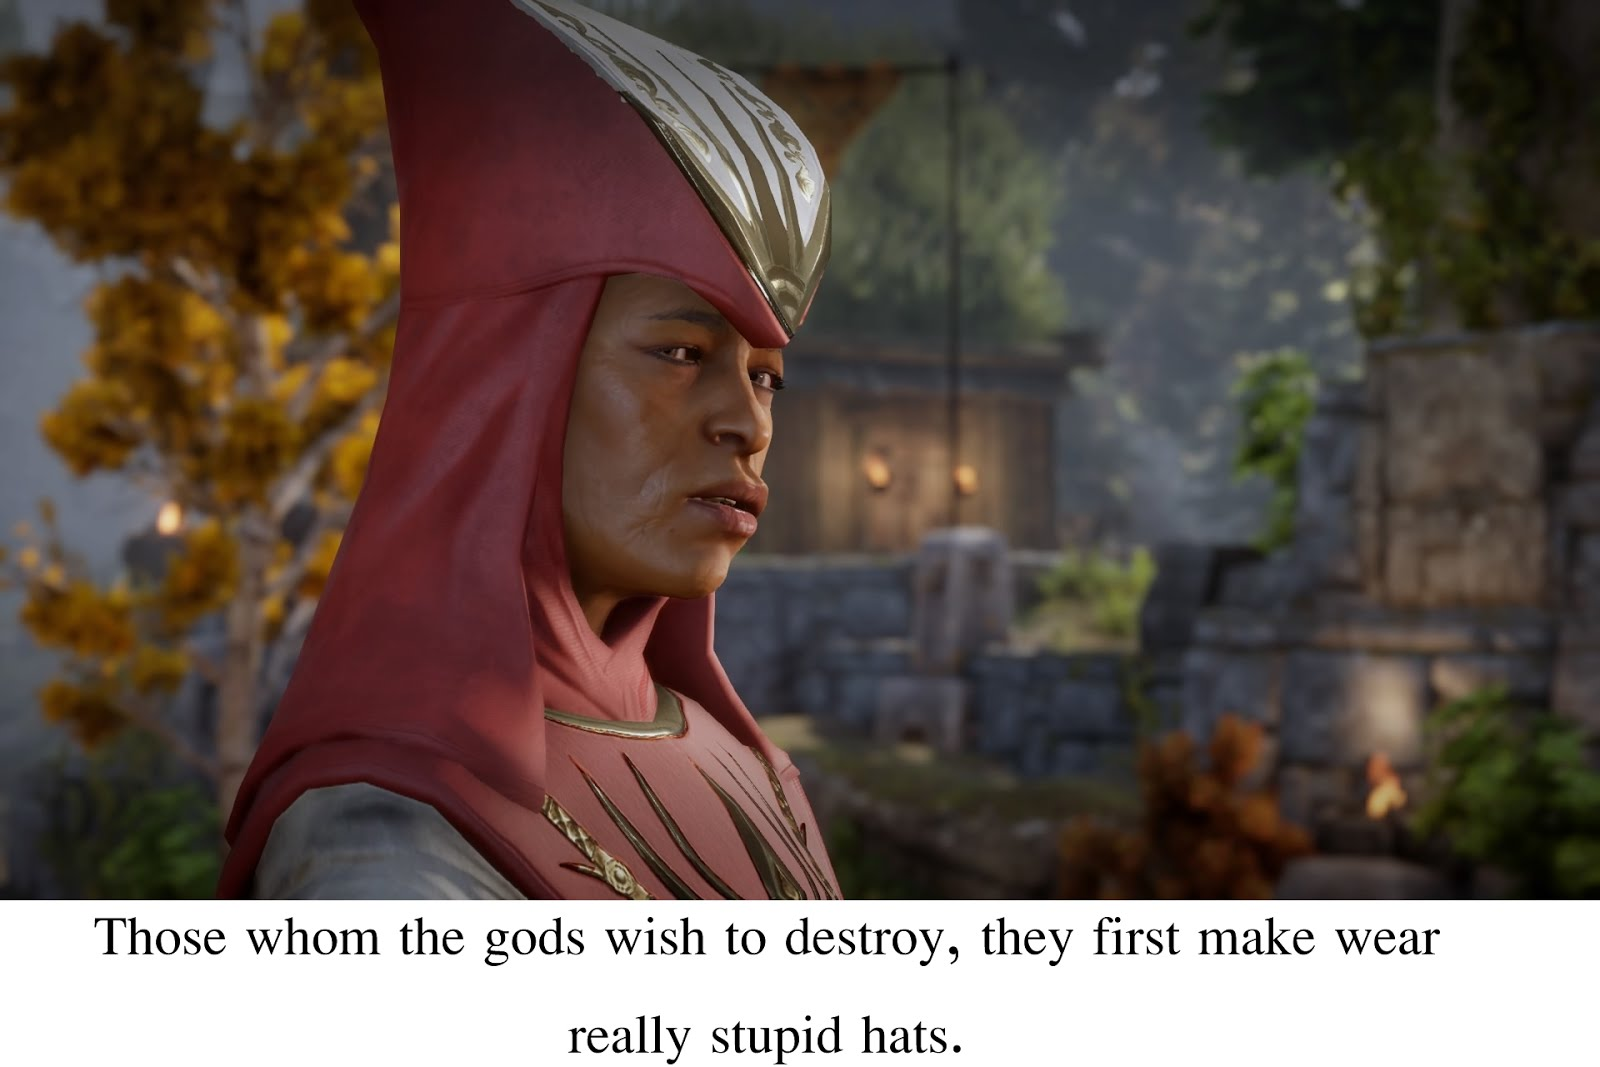 Thaddeus the Sixth: Dragon Age Delinquisition part 2: Herald of